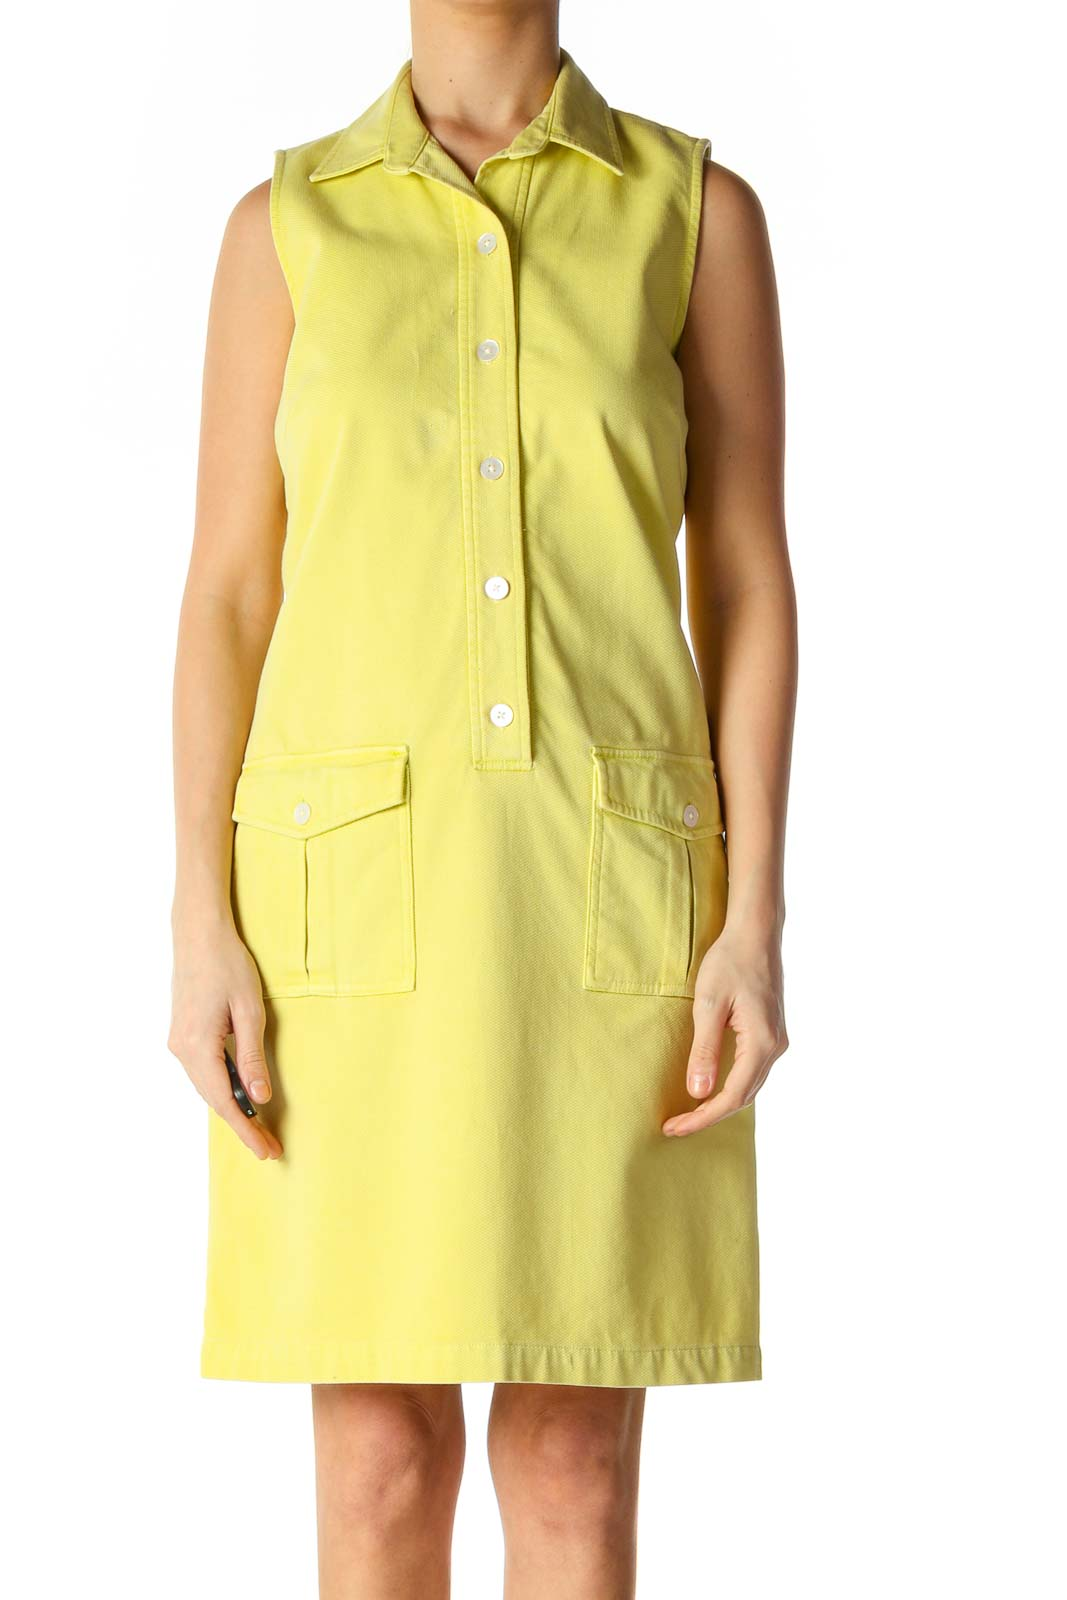 Yellow Solid Casual A-Line Dress Front